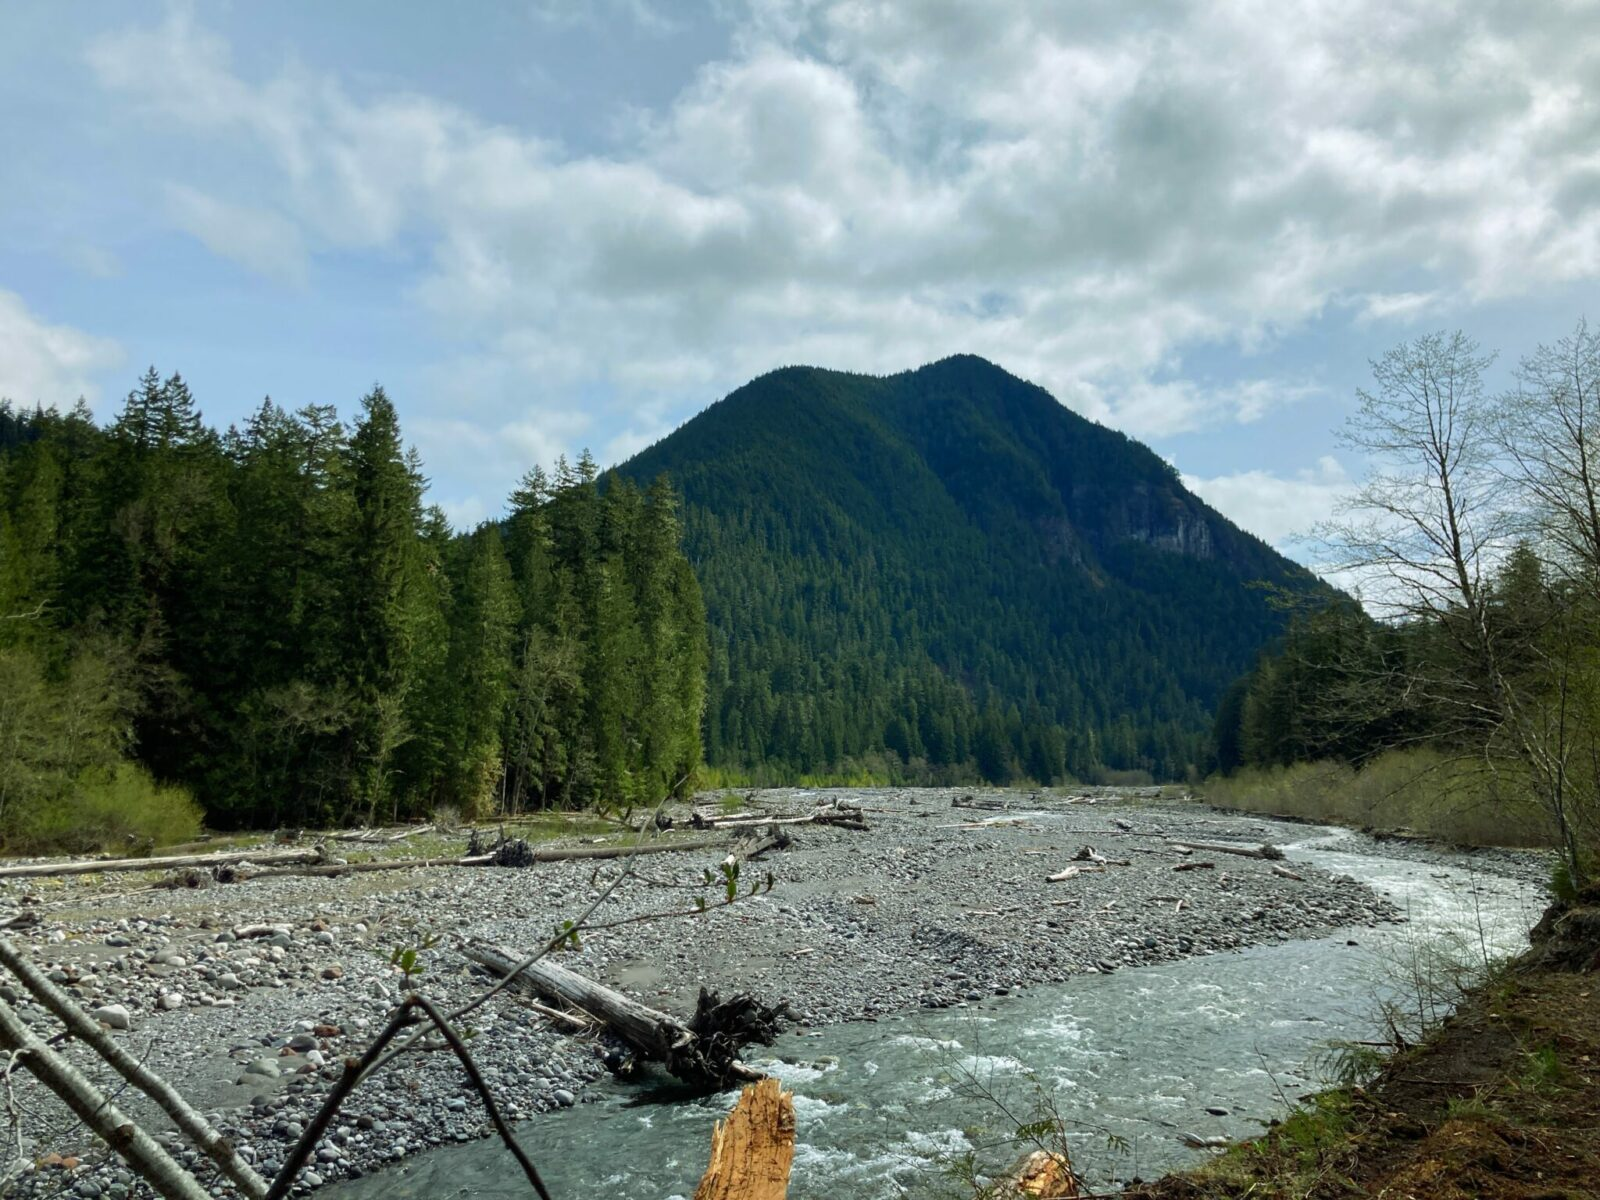 The Carbon River is milky colored and flowing through a wide rocky channel. There is a forested mountain in the background and forest on both sides of the river. It's a partly cloudy day.